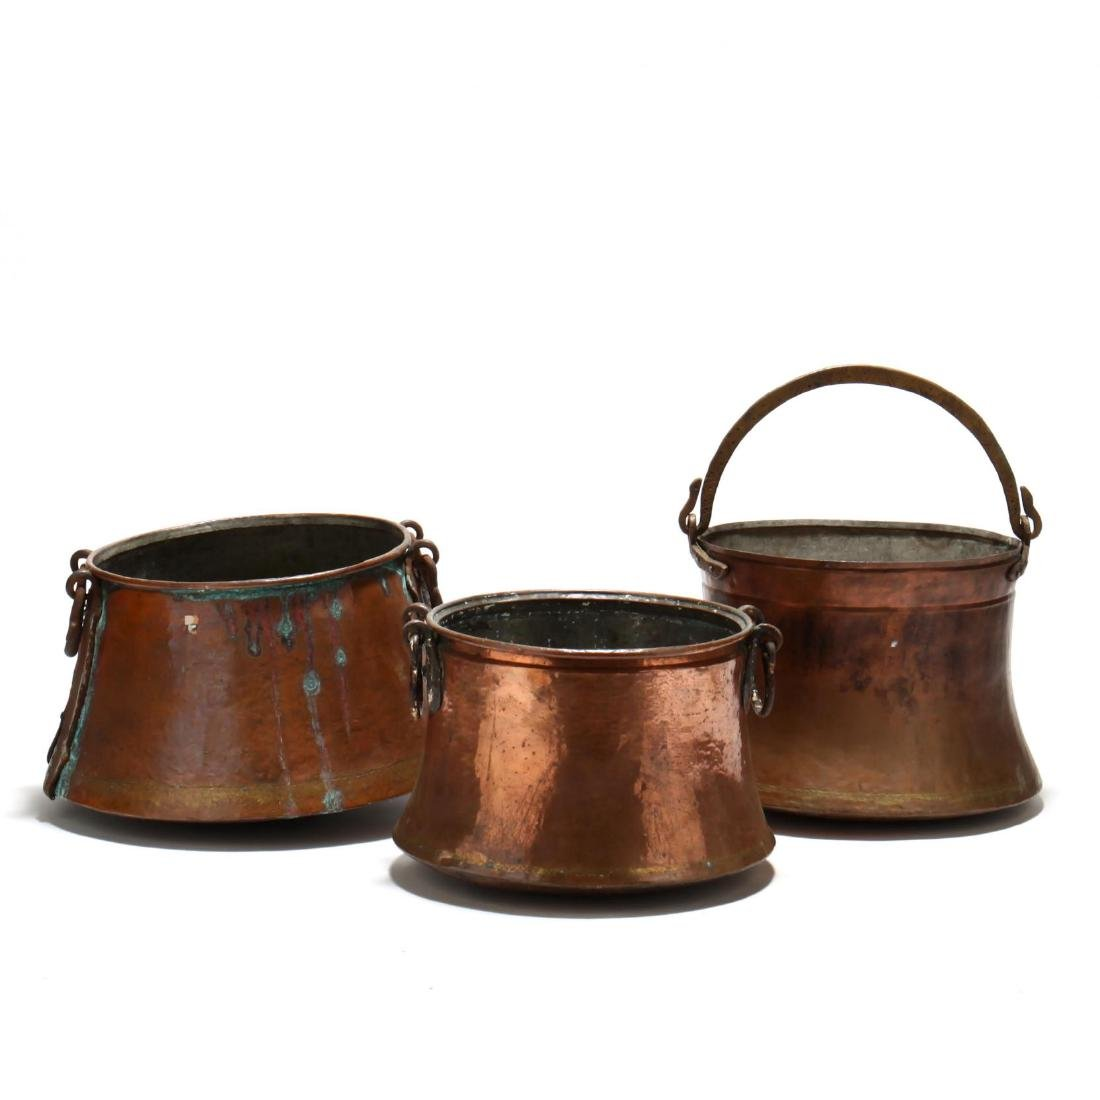 Three Antique Large Copper Cauldrons